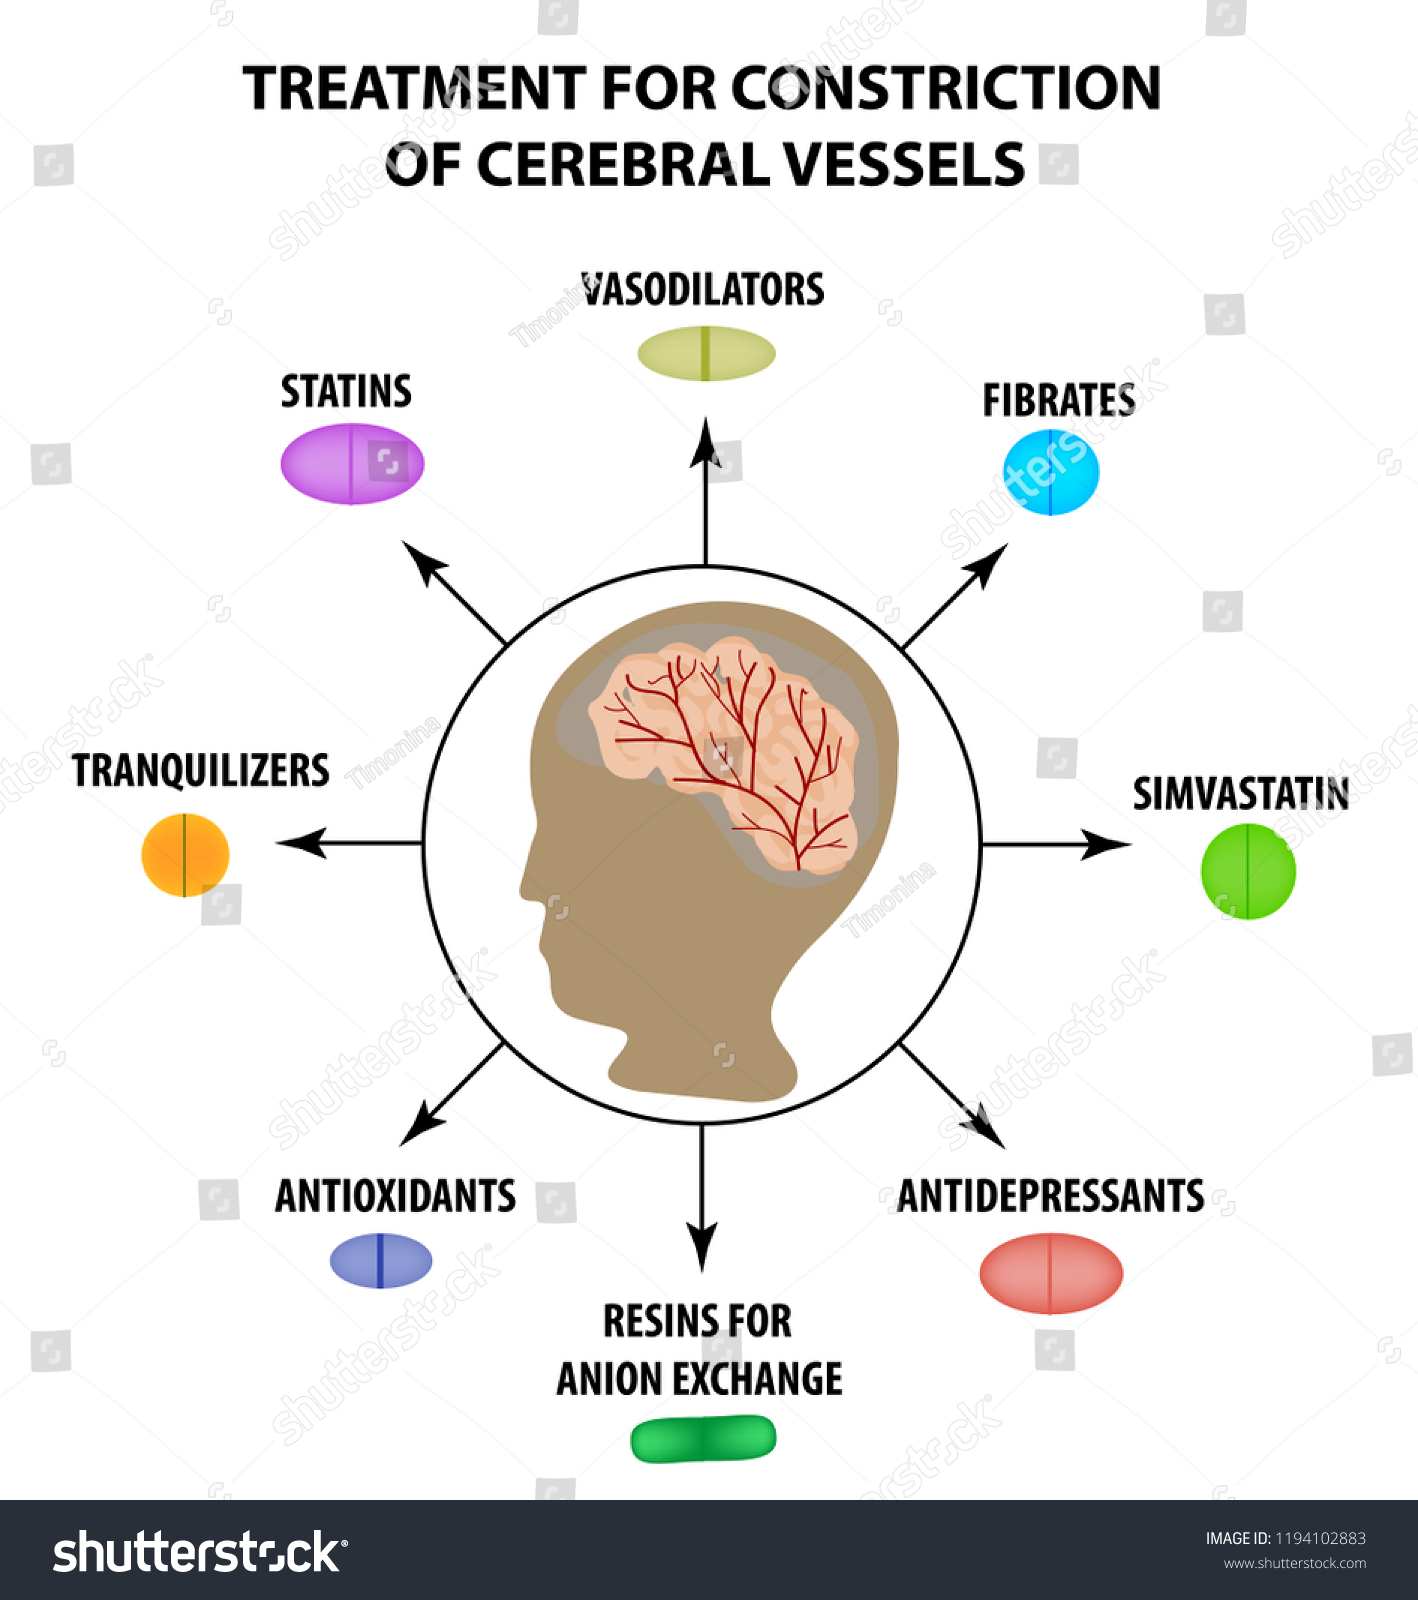 Constriction of cerebral vessels